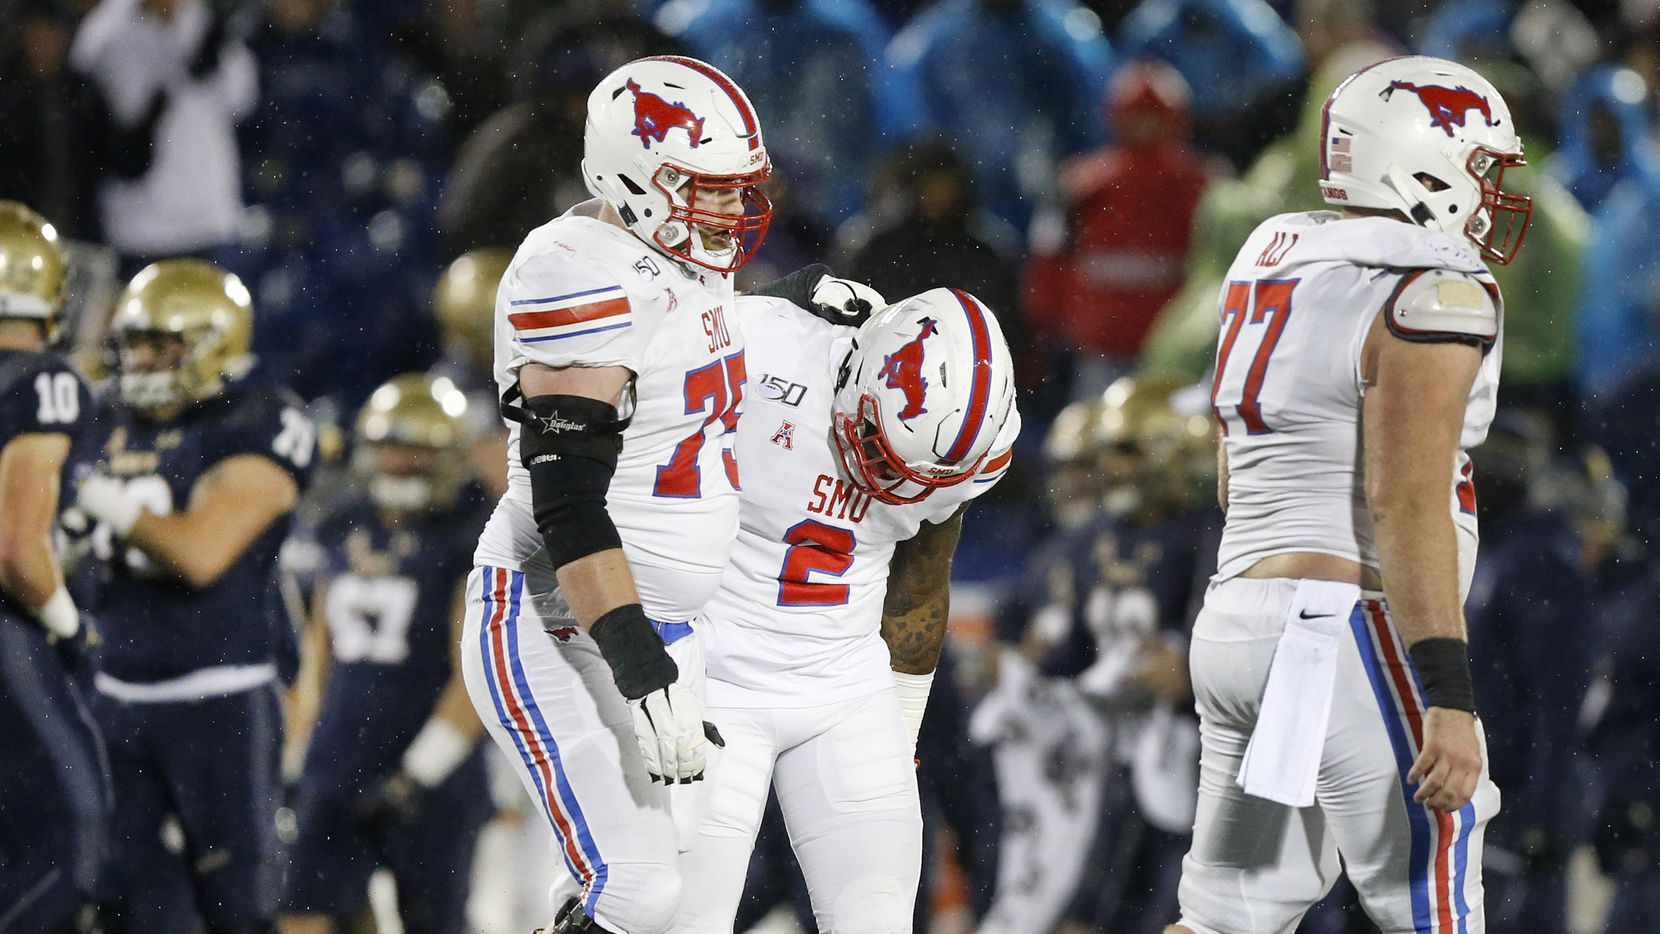 Southern Methodist Mustangs offensive lineman Hayden Howerton (75) consoles running back Ke'Mon Freeman (2) after they failed to convert on fourth down late in the fourth quarter against the Navy Midshipmen at Navy-Marine Corps Memorial Stadium in Annapolis, Maryland, Saturday, November 23, 2019. The Mustangs lost, 35-28.